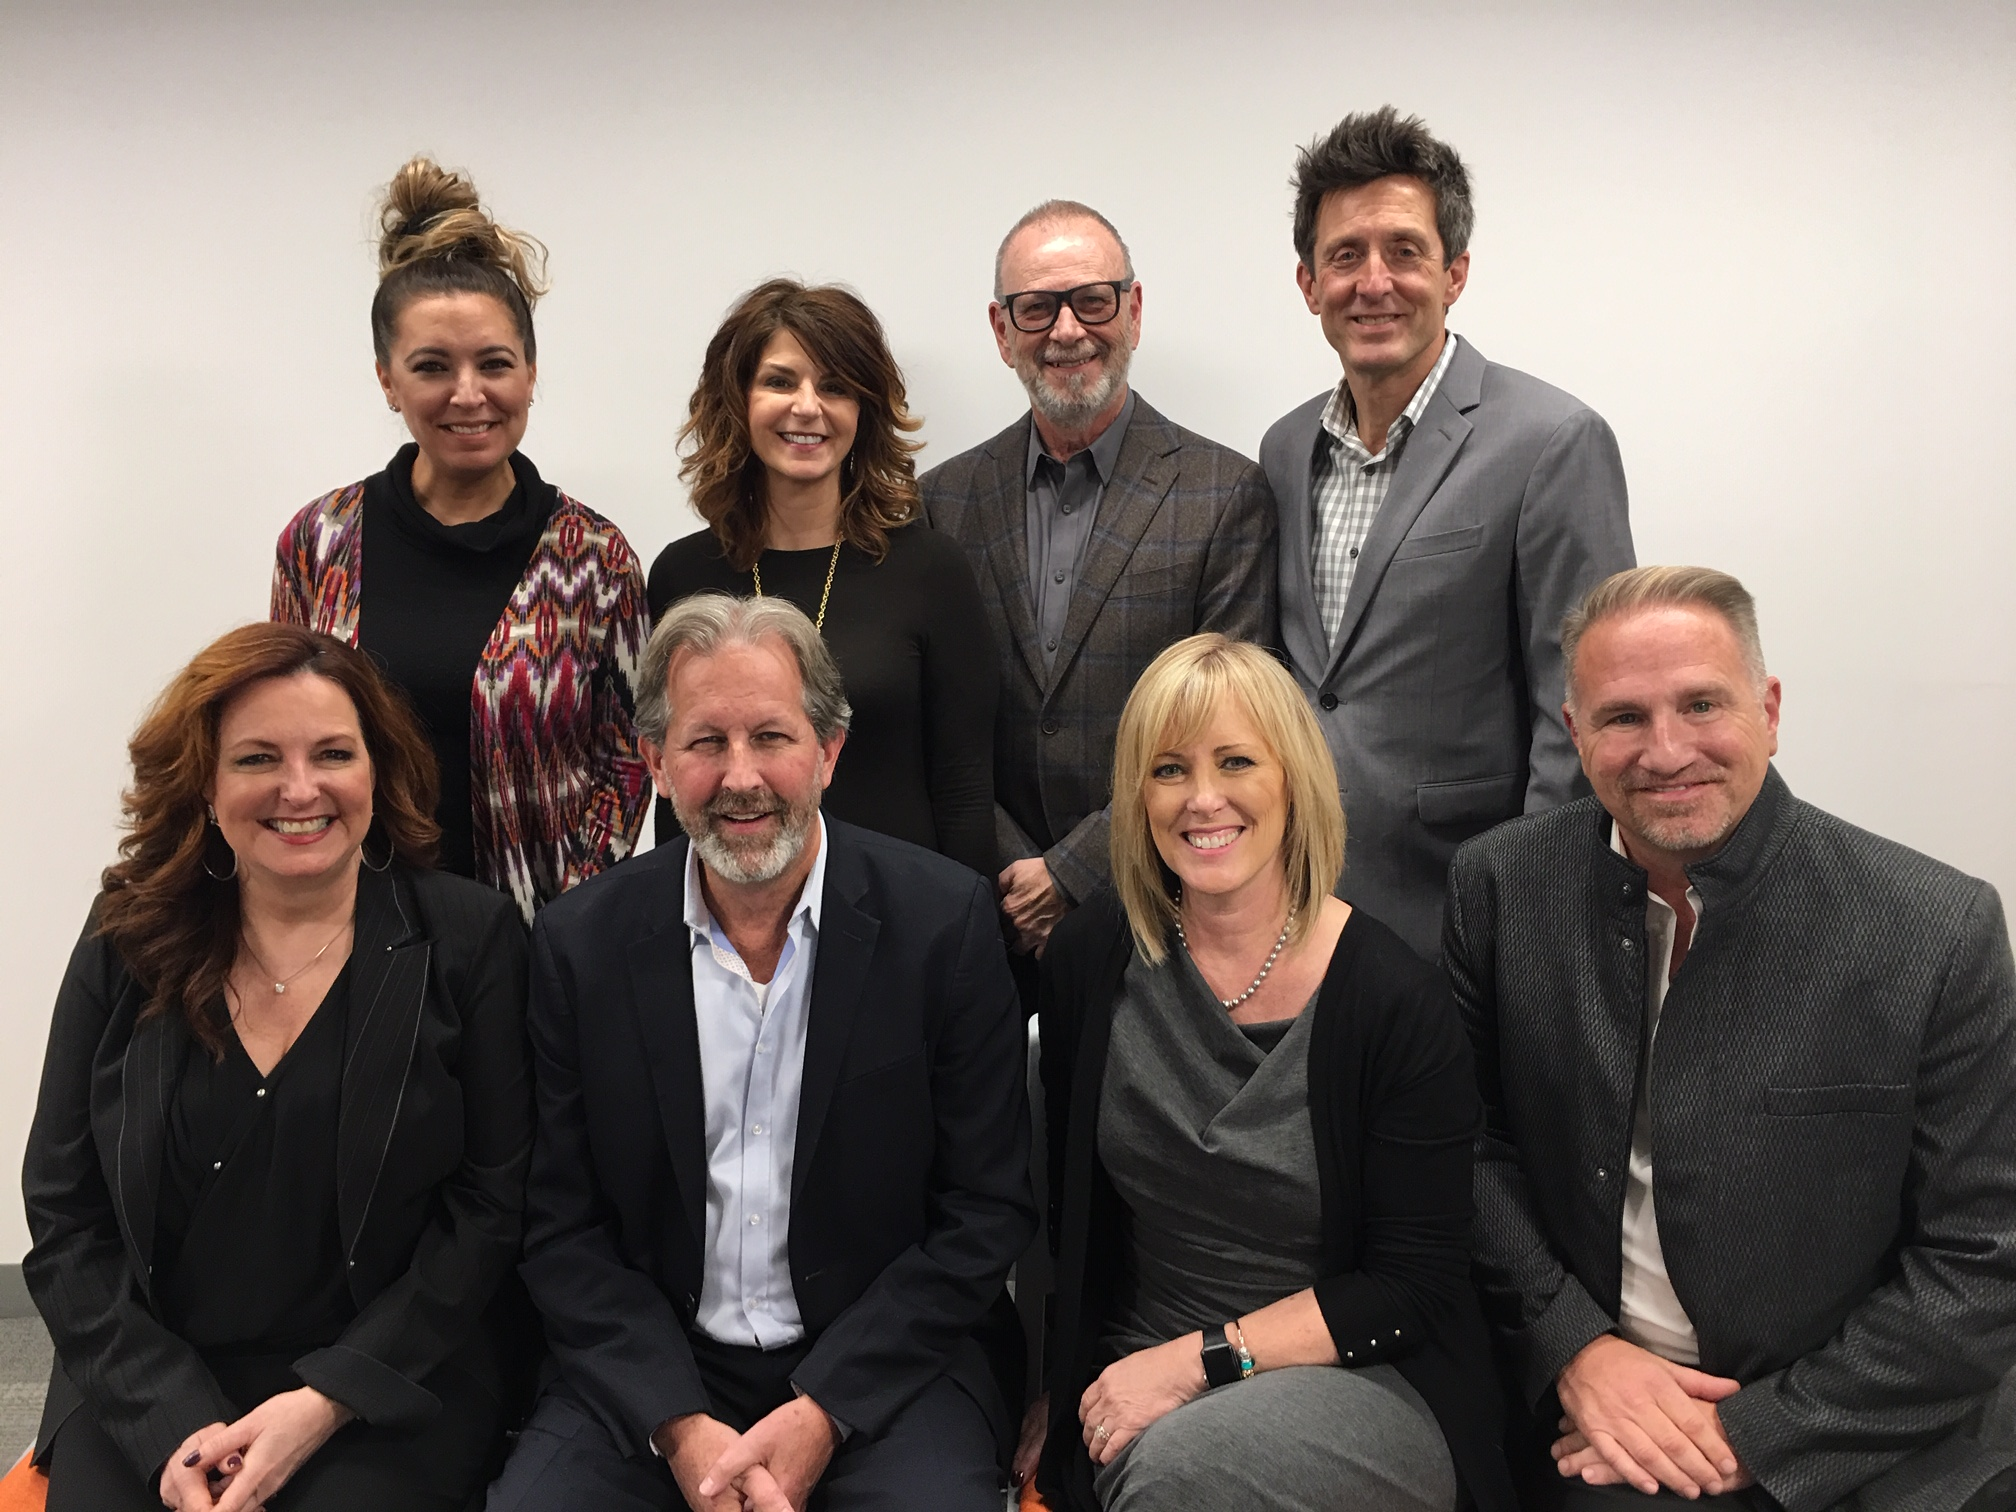 Cosmetologists Chicago Elects New Board of Directors